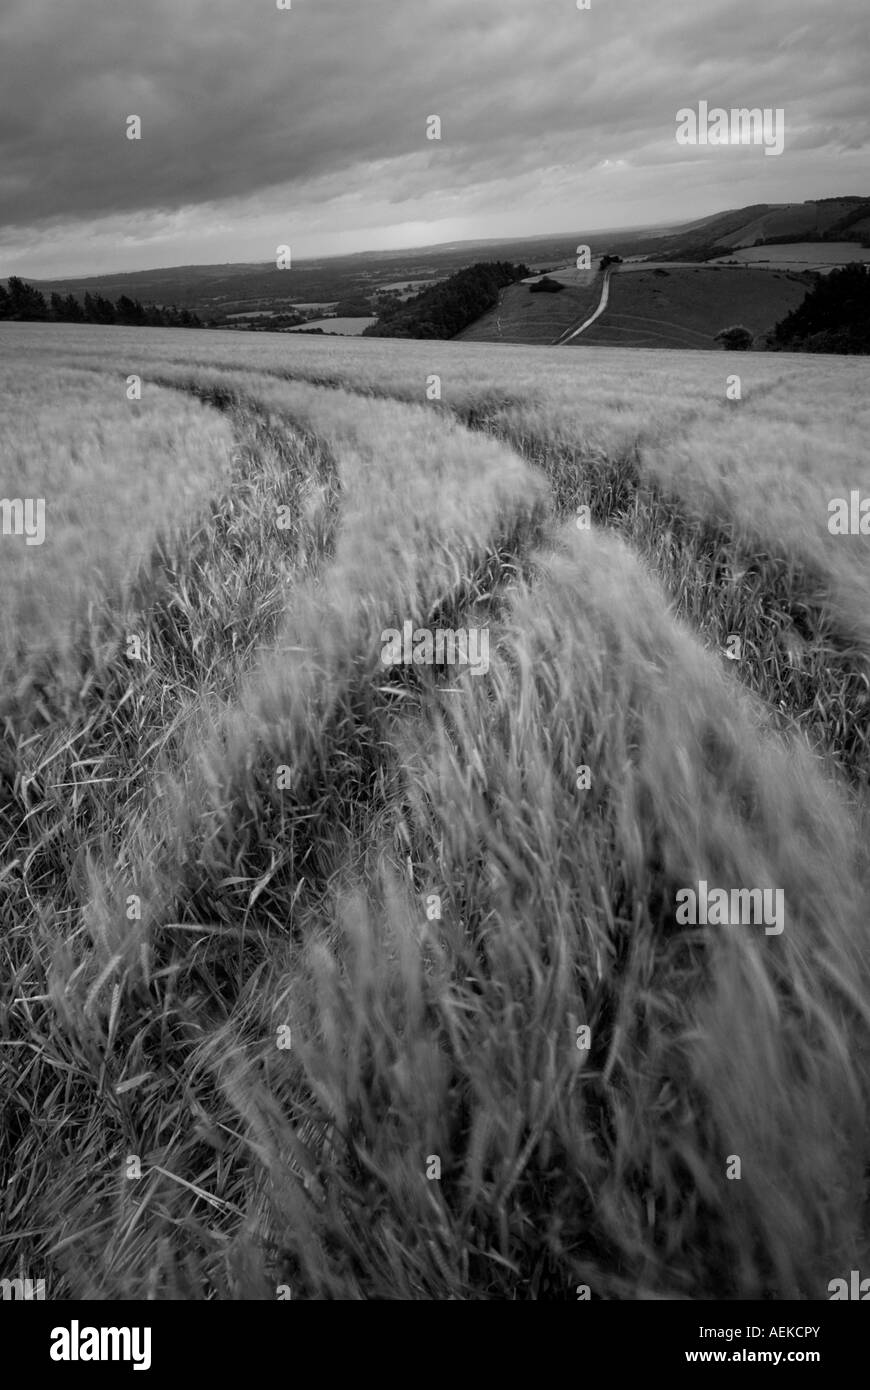 Wheat field in Sussex - Stock Image